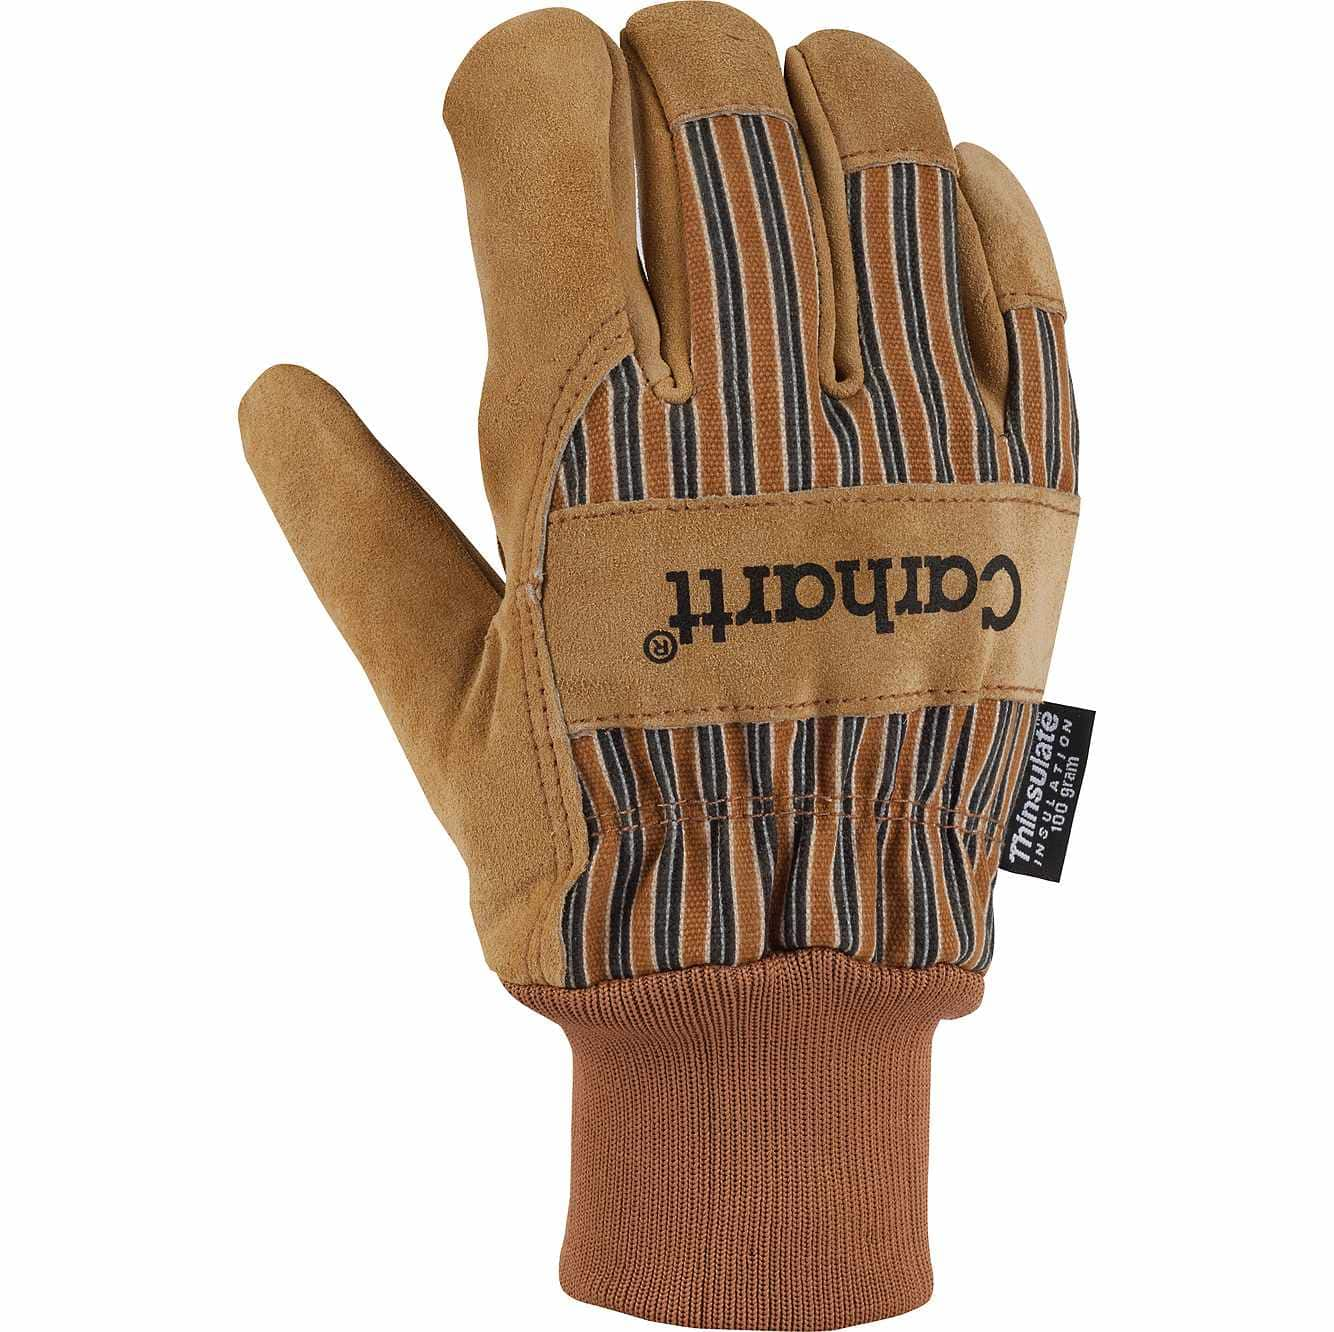 Picture of Insulated Suede Knit Cuff Work Glove in Carhartt Brown